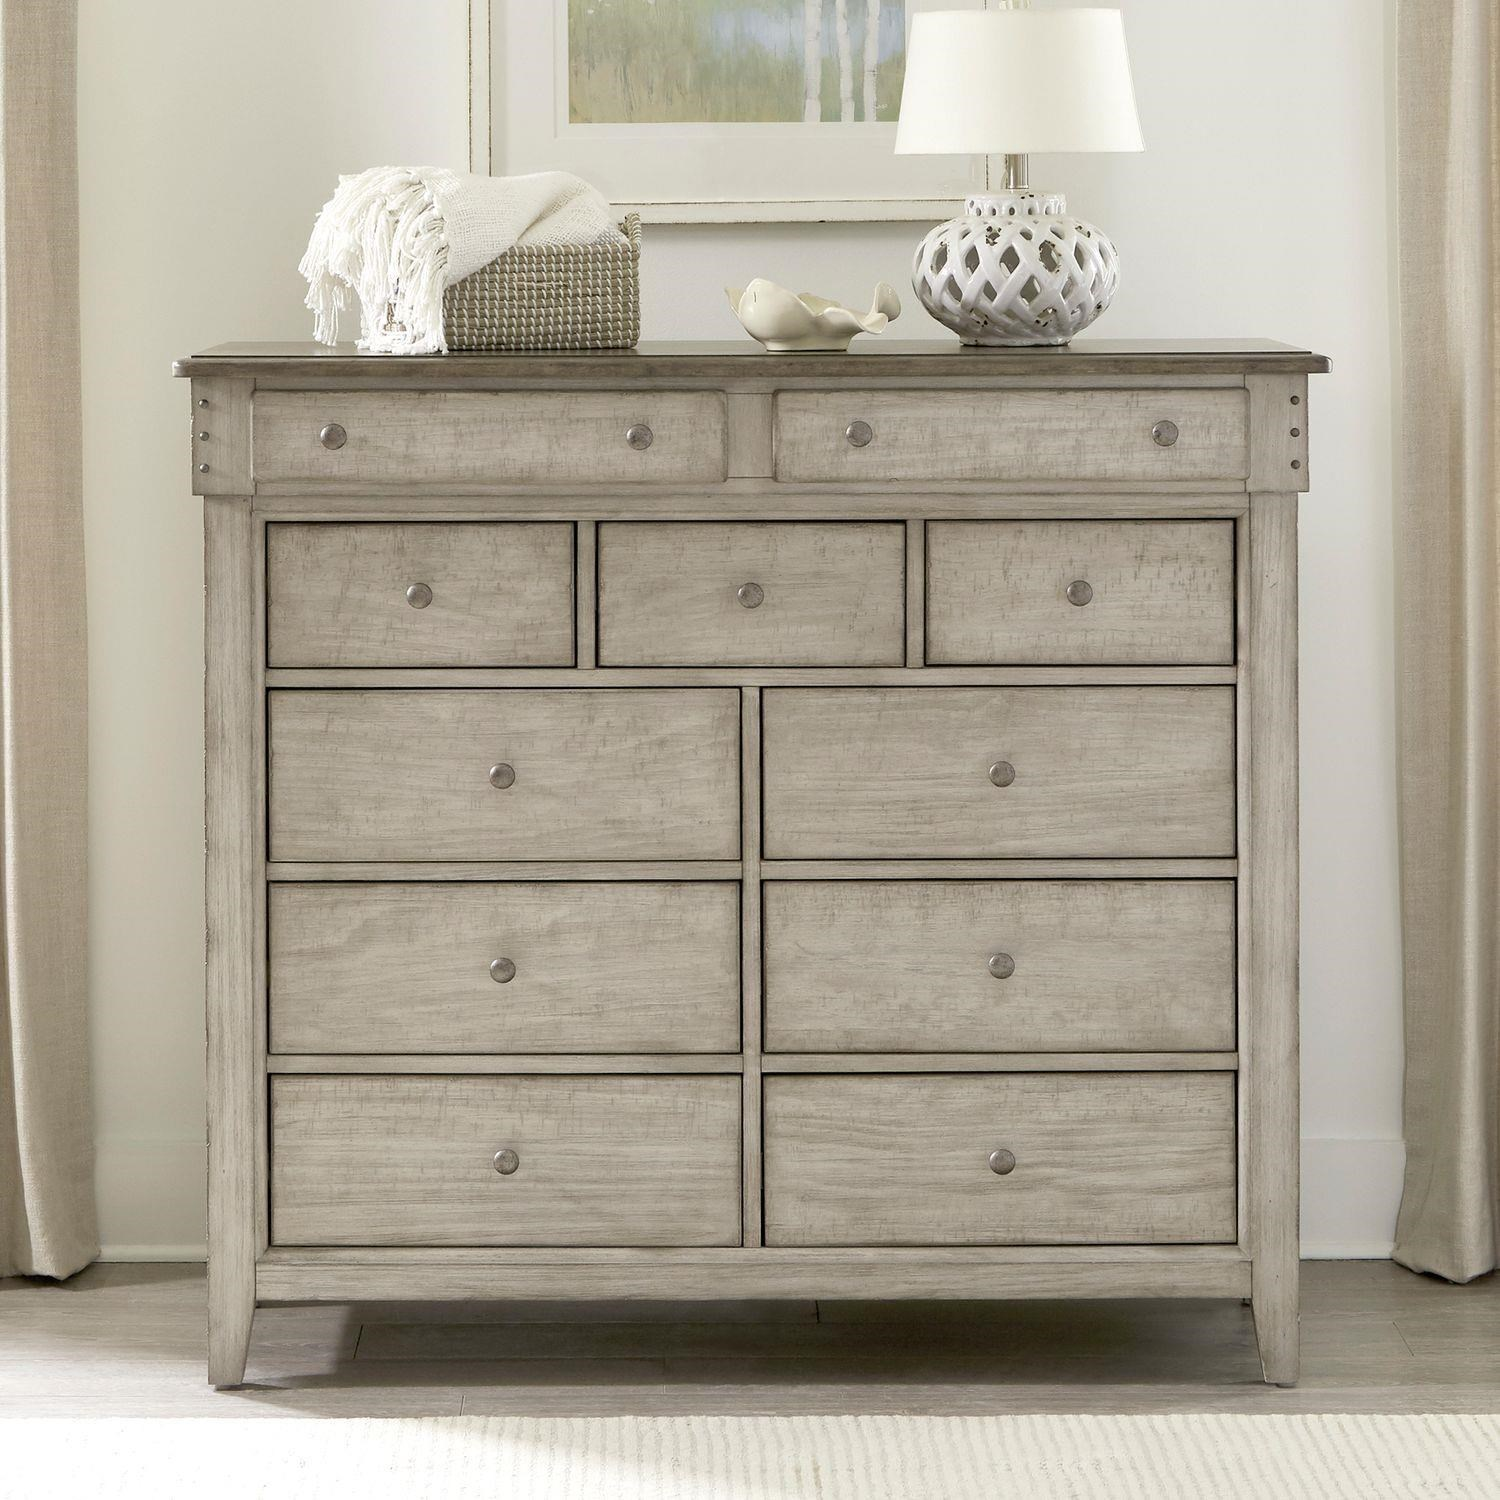 Ivy Hollow 11 Drawer Dresser by Liberty Furniture at Johnny Janosik